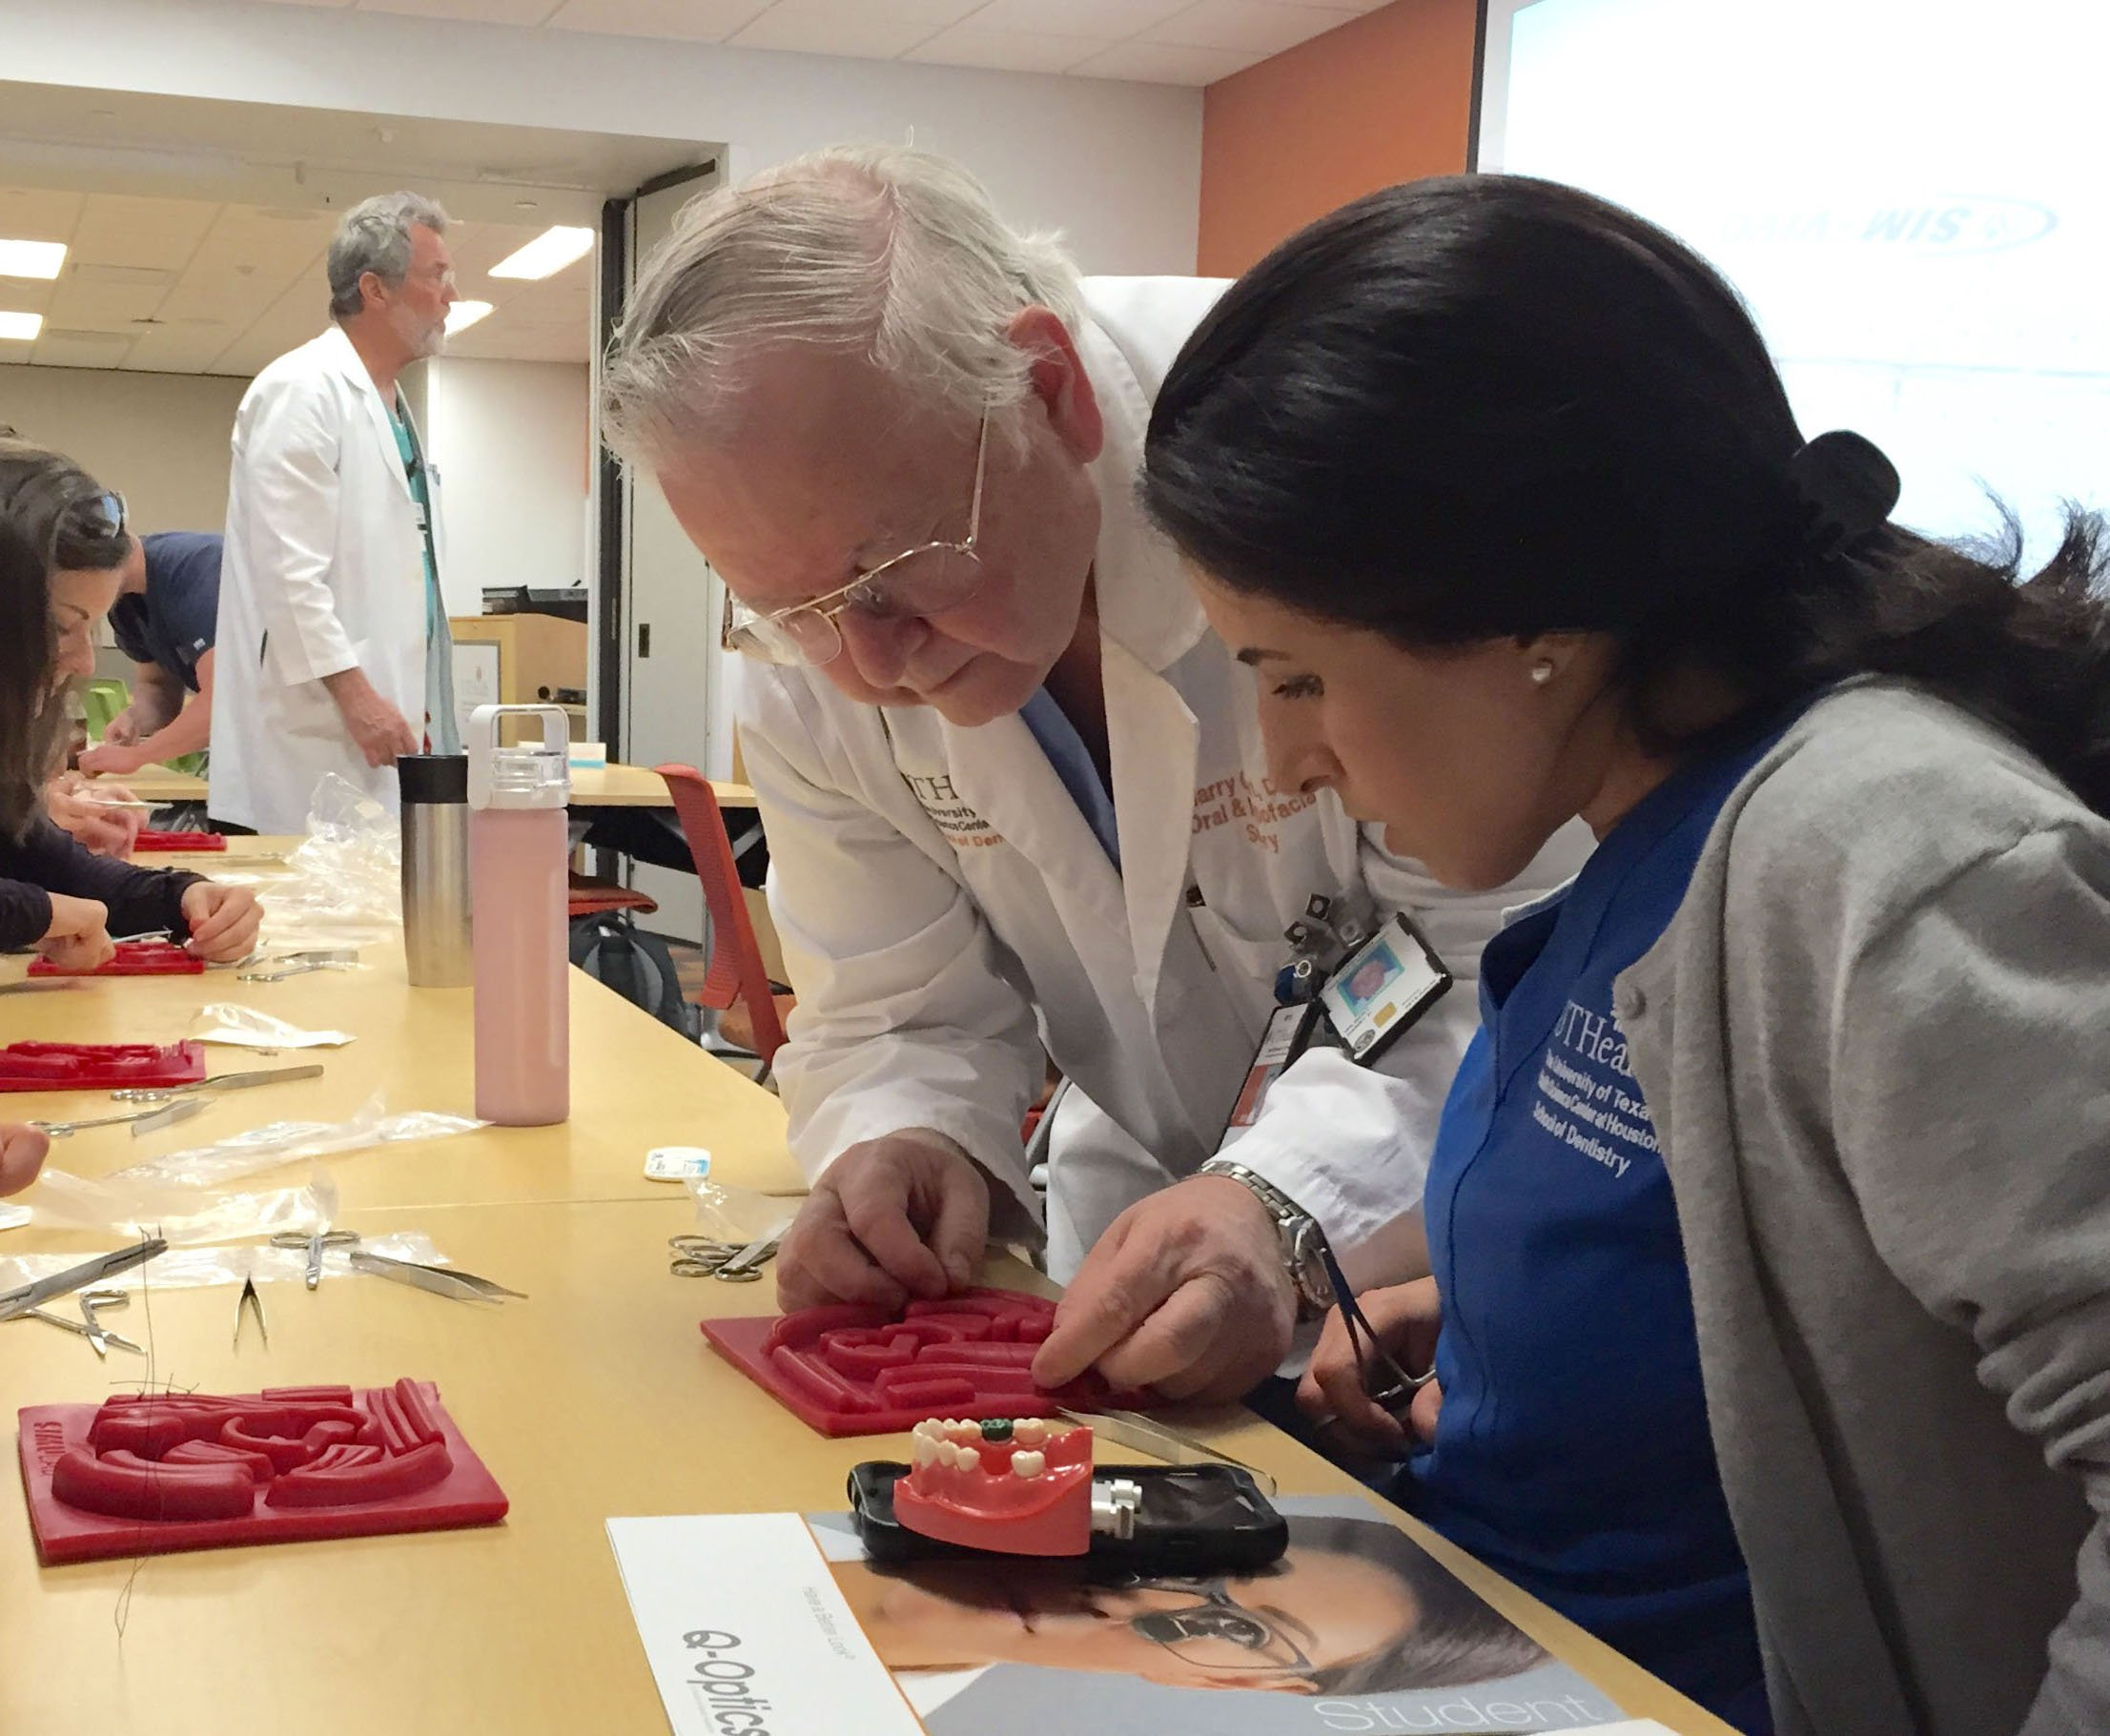 Dr. Harry Gilbert shows a dental student how to suture gums.